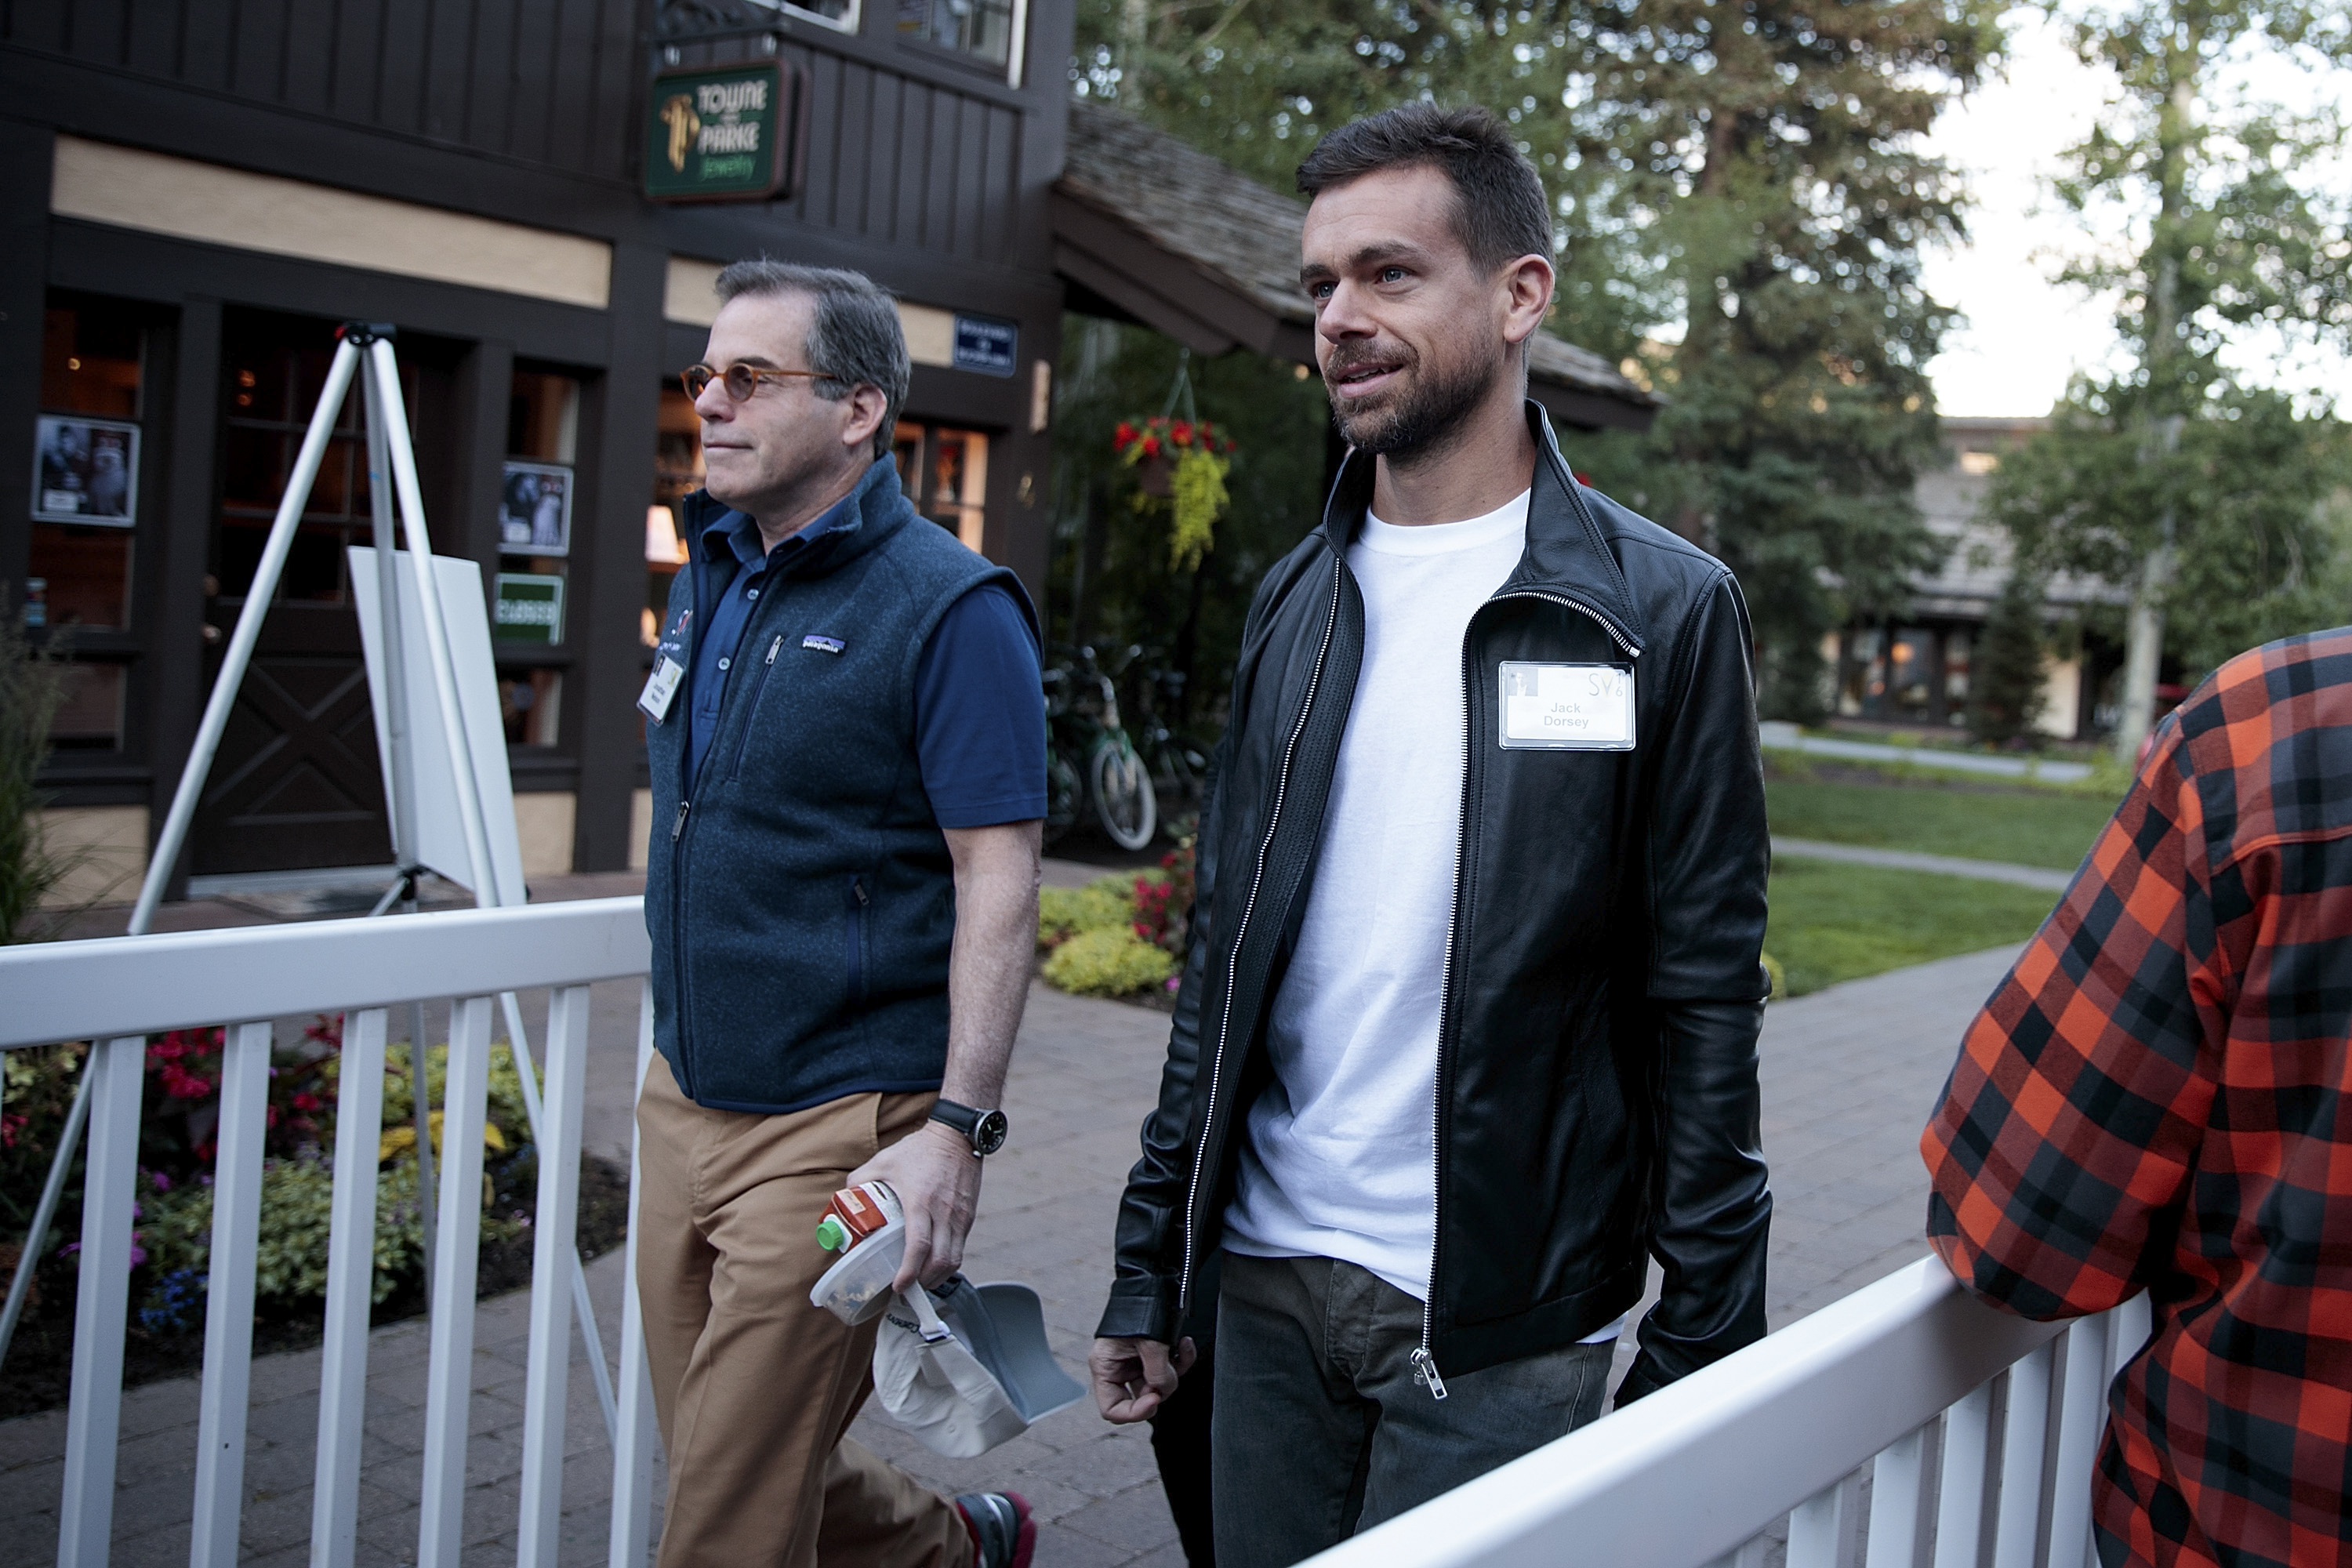 Jonathan Nelson, founder of Providence Equity Partners, and Jack Dorsey, co-founder and chief executive officer of Twitter